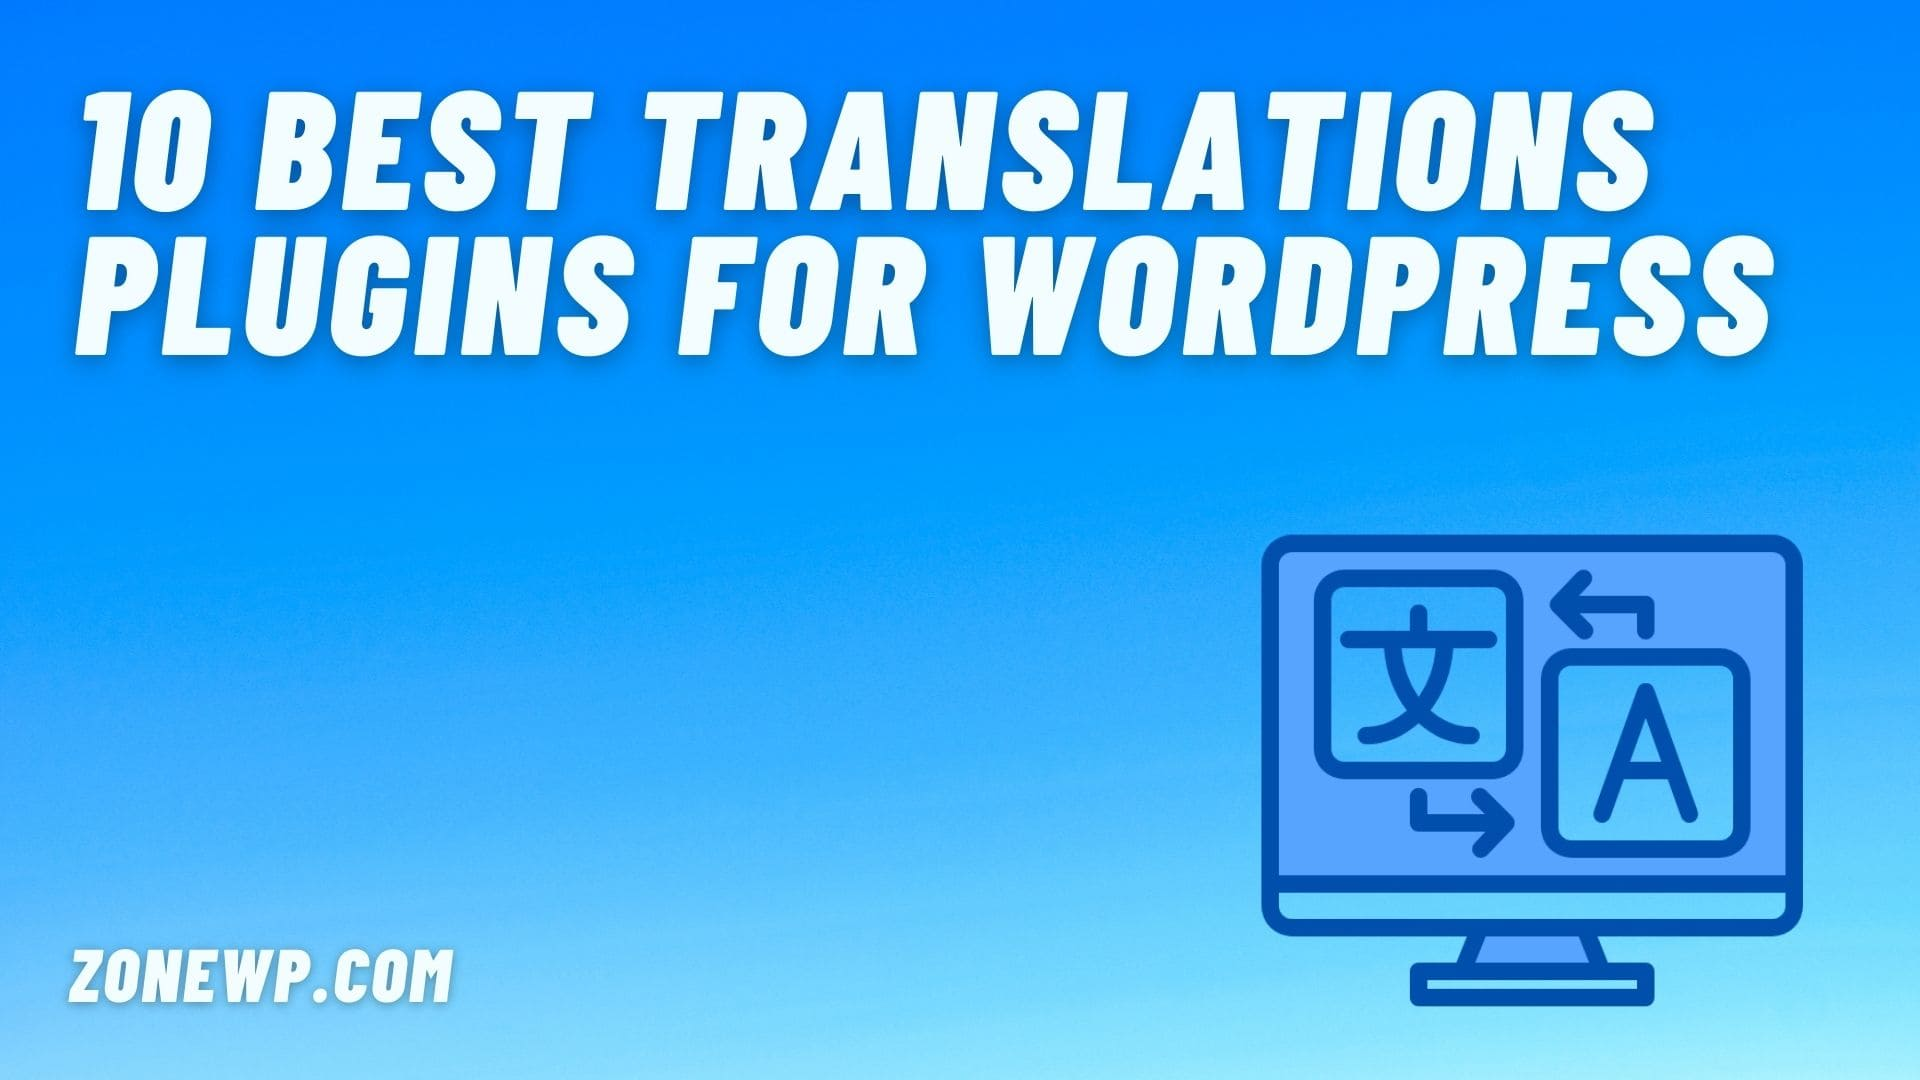 10 Best Translations Plugins for WordPress